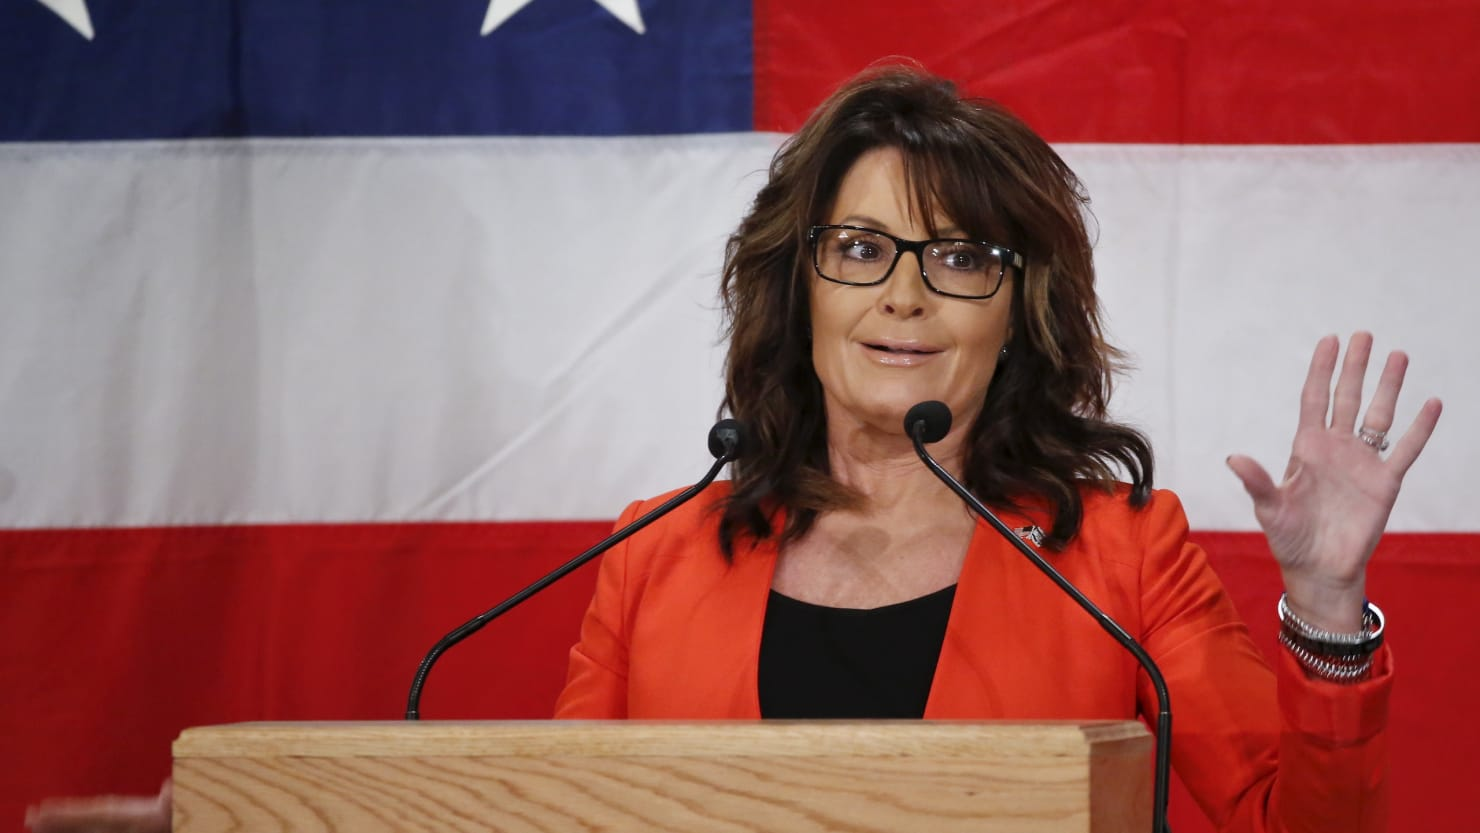 Sarah palin admits she was duped by sacha baron cohen the daily kamil krzaczynskireuters altavistaventures Images